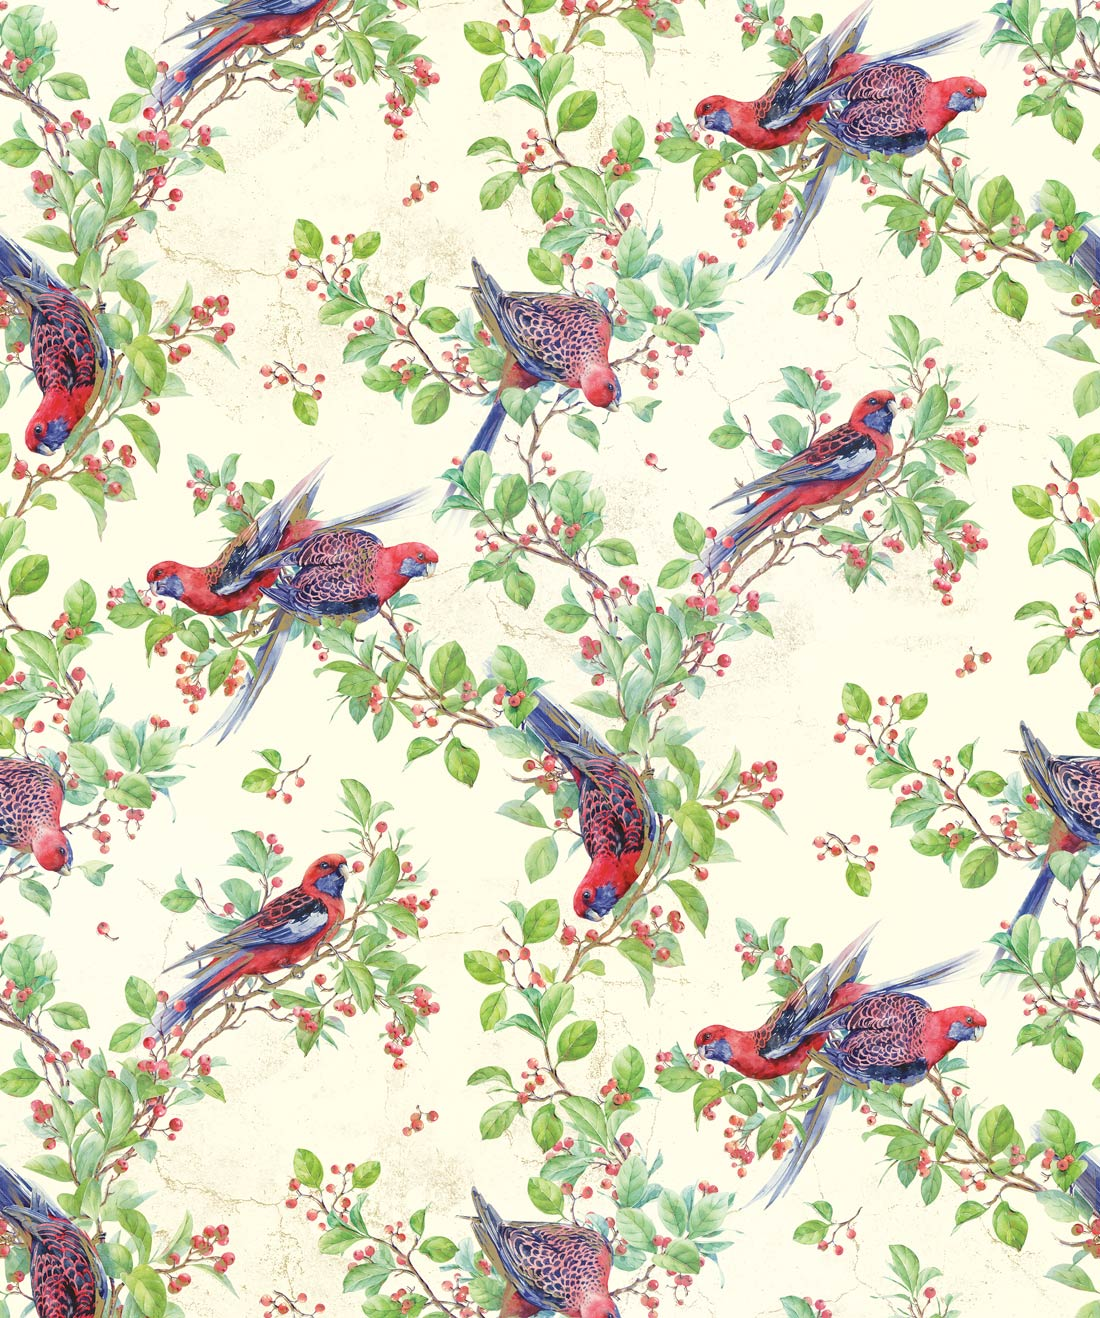 Crimson Rosella Wallpaper